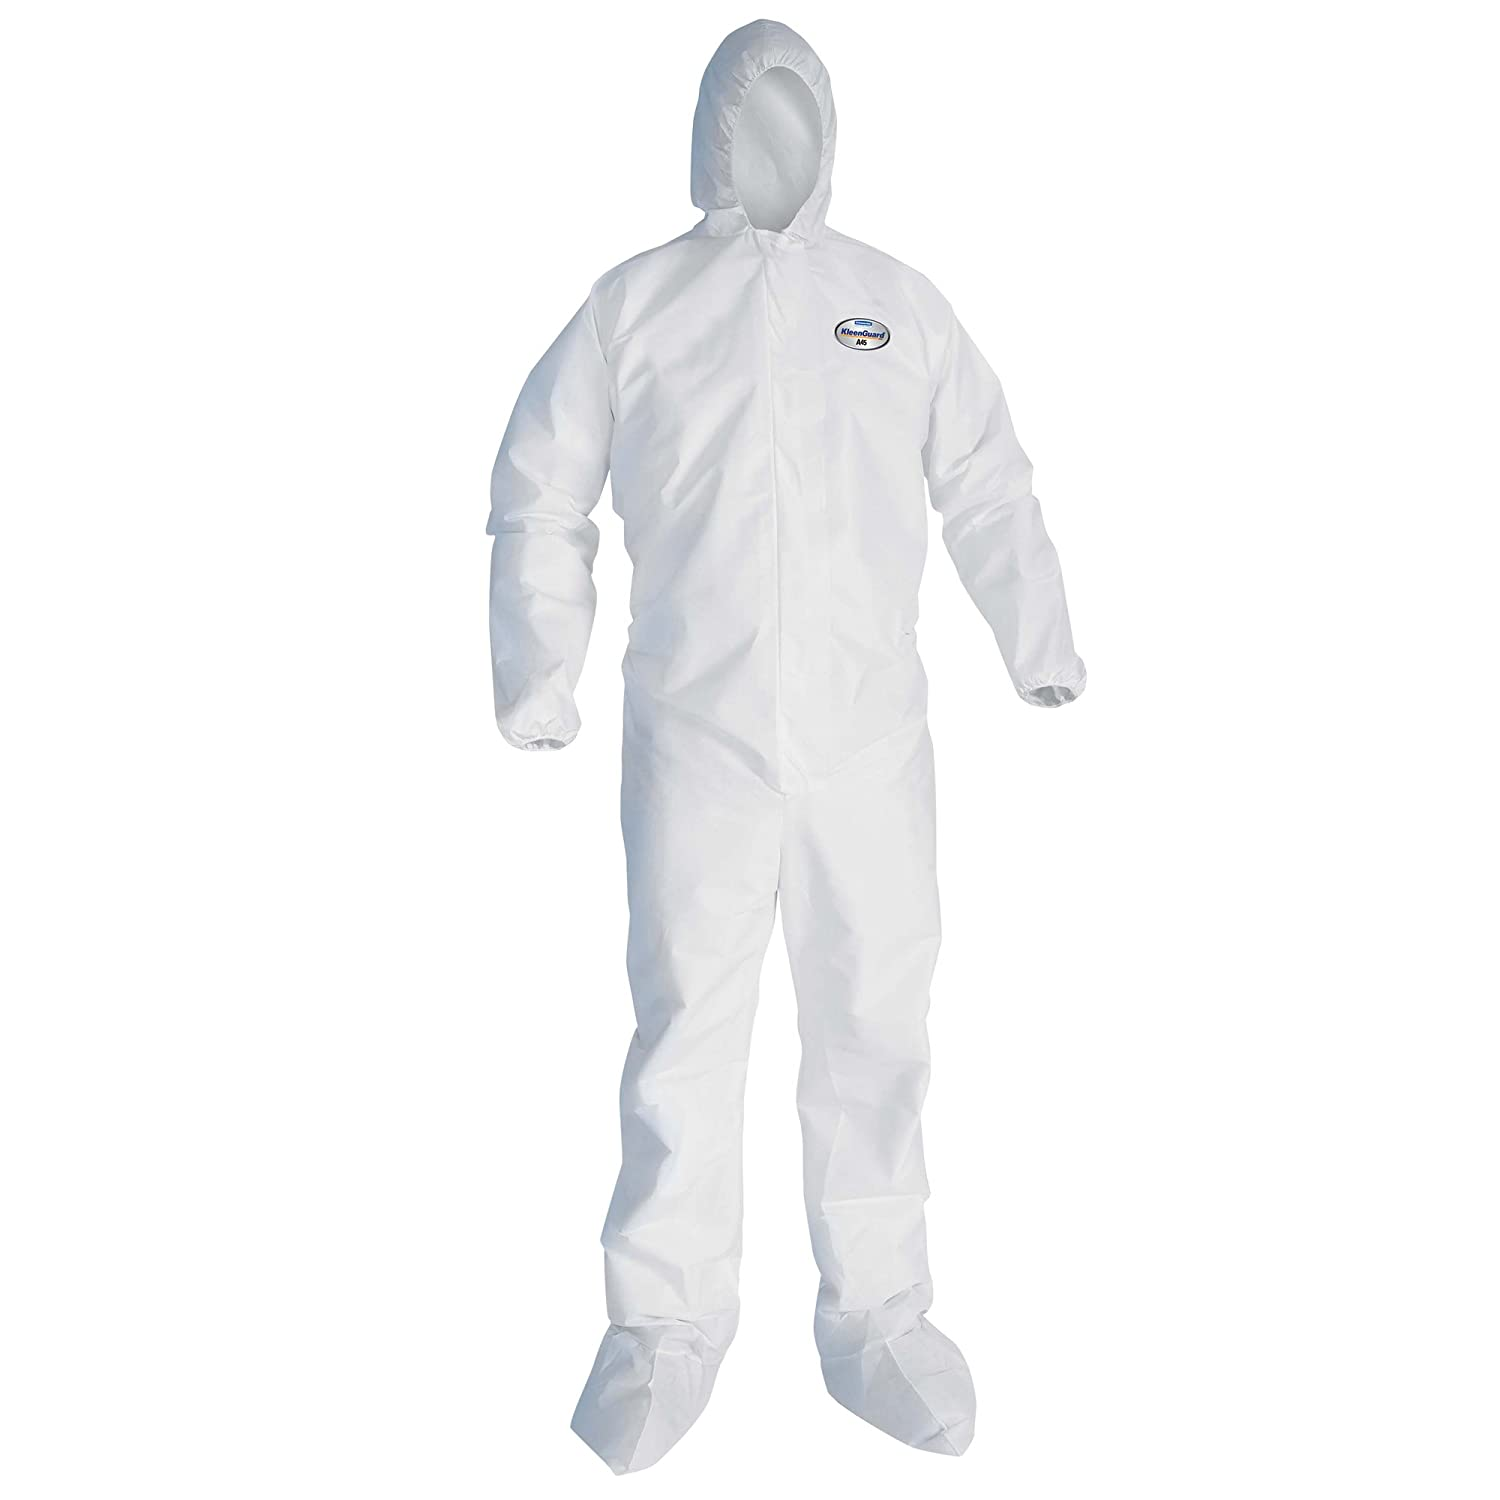 Kleenguard A45 Liquid & Particle Surface Prep & Paint Protection Coveralls (41513), Hood, Boots, EWA, Reflex Design, Zip Front, White, Small, 25 / Case